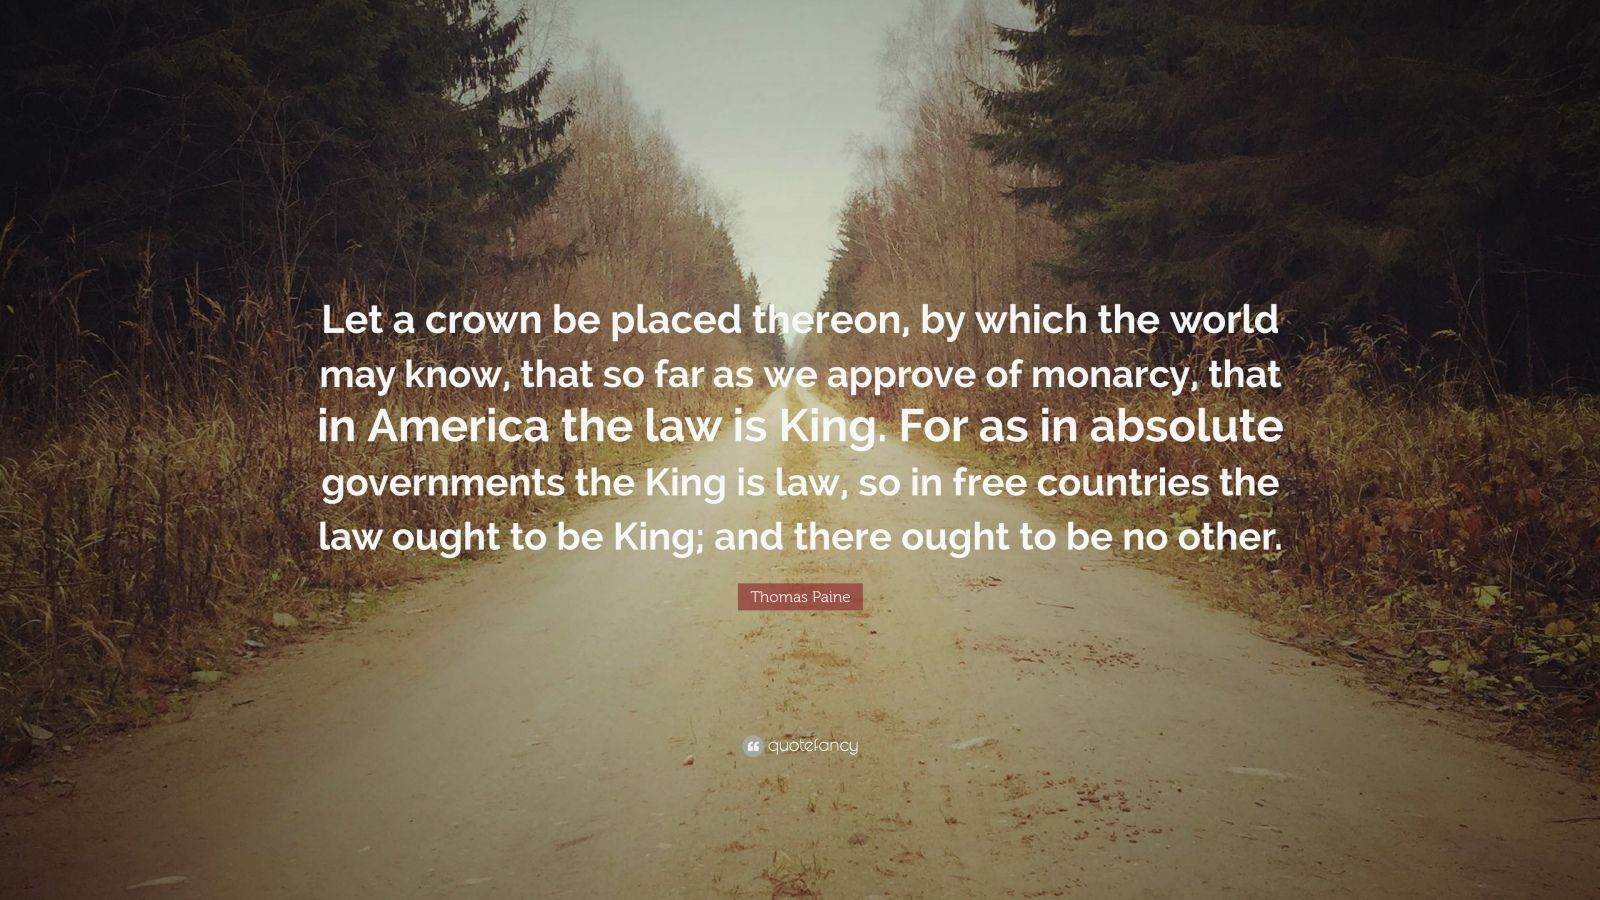 """Thomas Paine Quote: """"Let a crown be placed thereon, by which the world may know, that so far as we approve of monarcy, that in America the law is King. For as in absolute governments the King is law, so in free countries the law ought to be King; and there ought to be no other."""""""